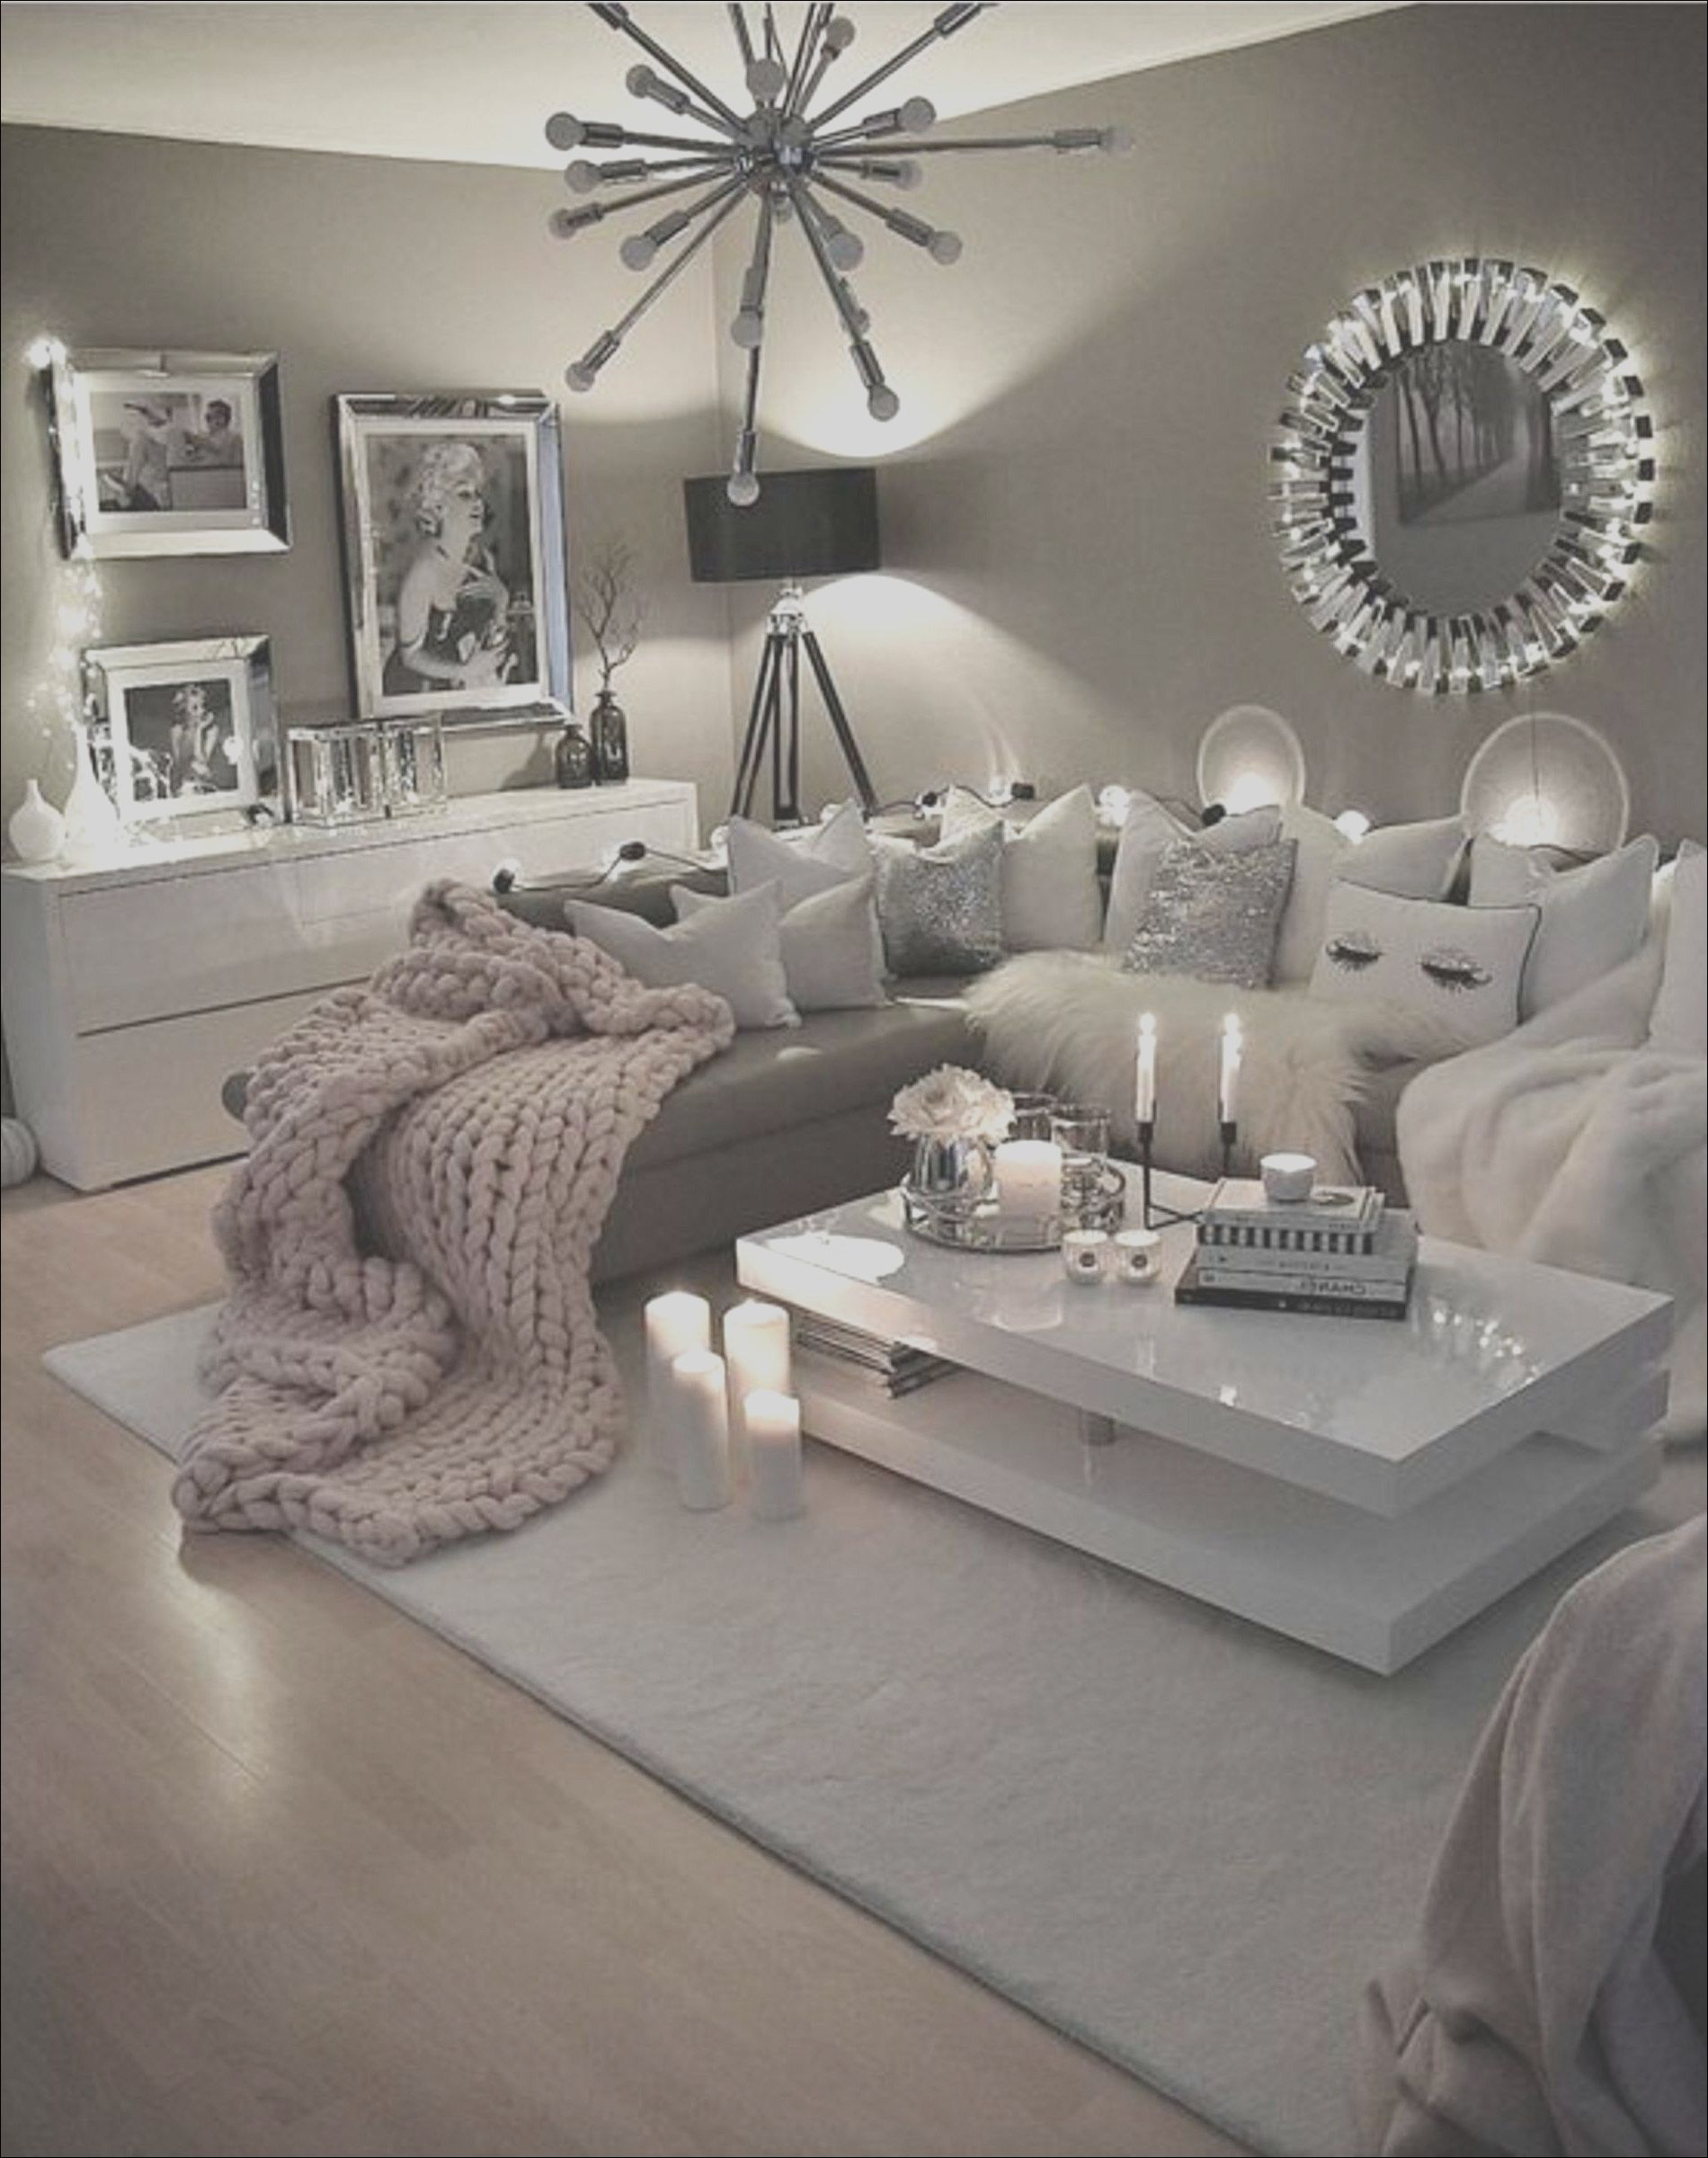 5 Beneficial Decorating Ideas For Apartments Living Room Photos Cozy Grey Living Room Living Room Decor Gray Modern Grey Living Room